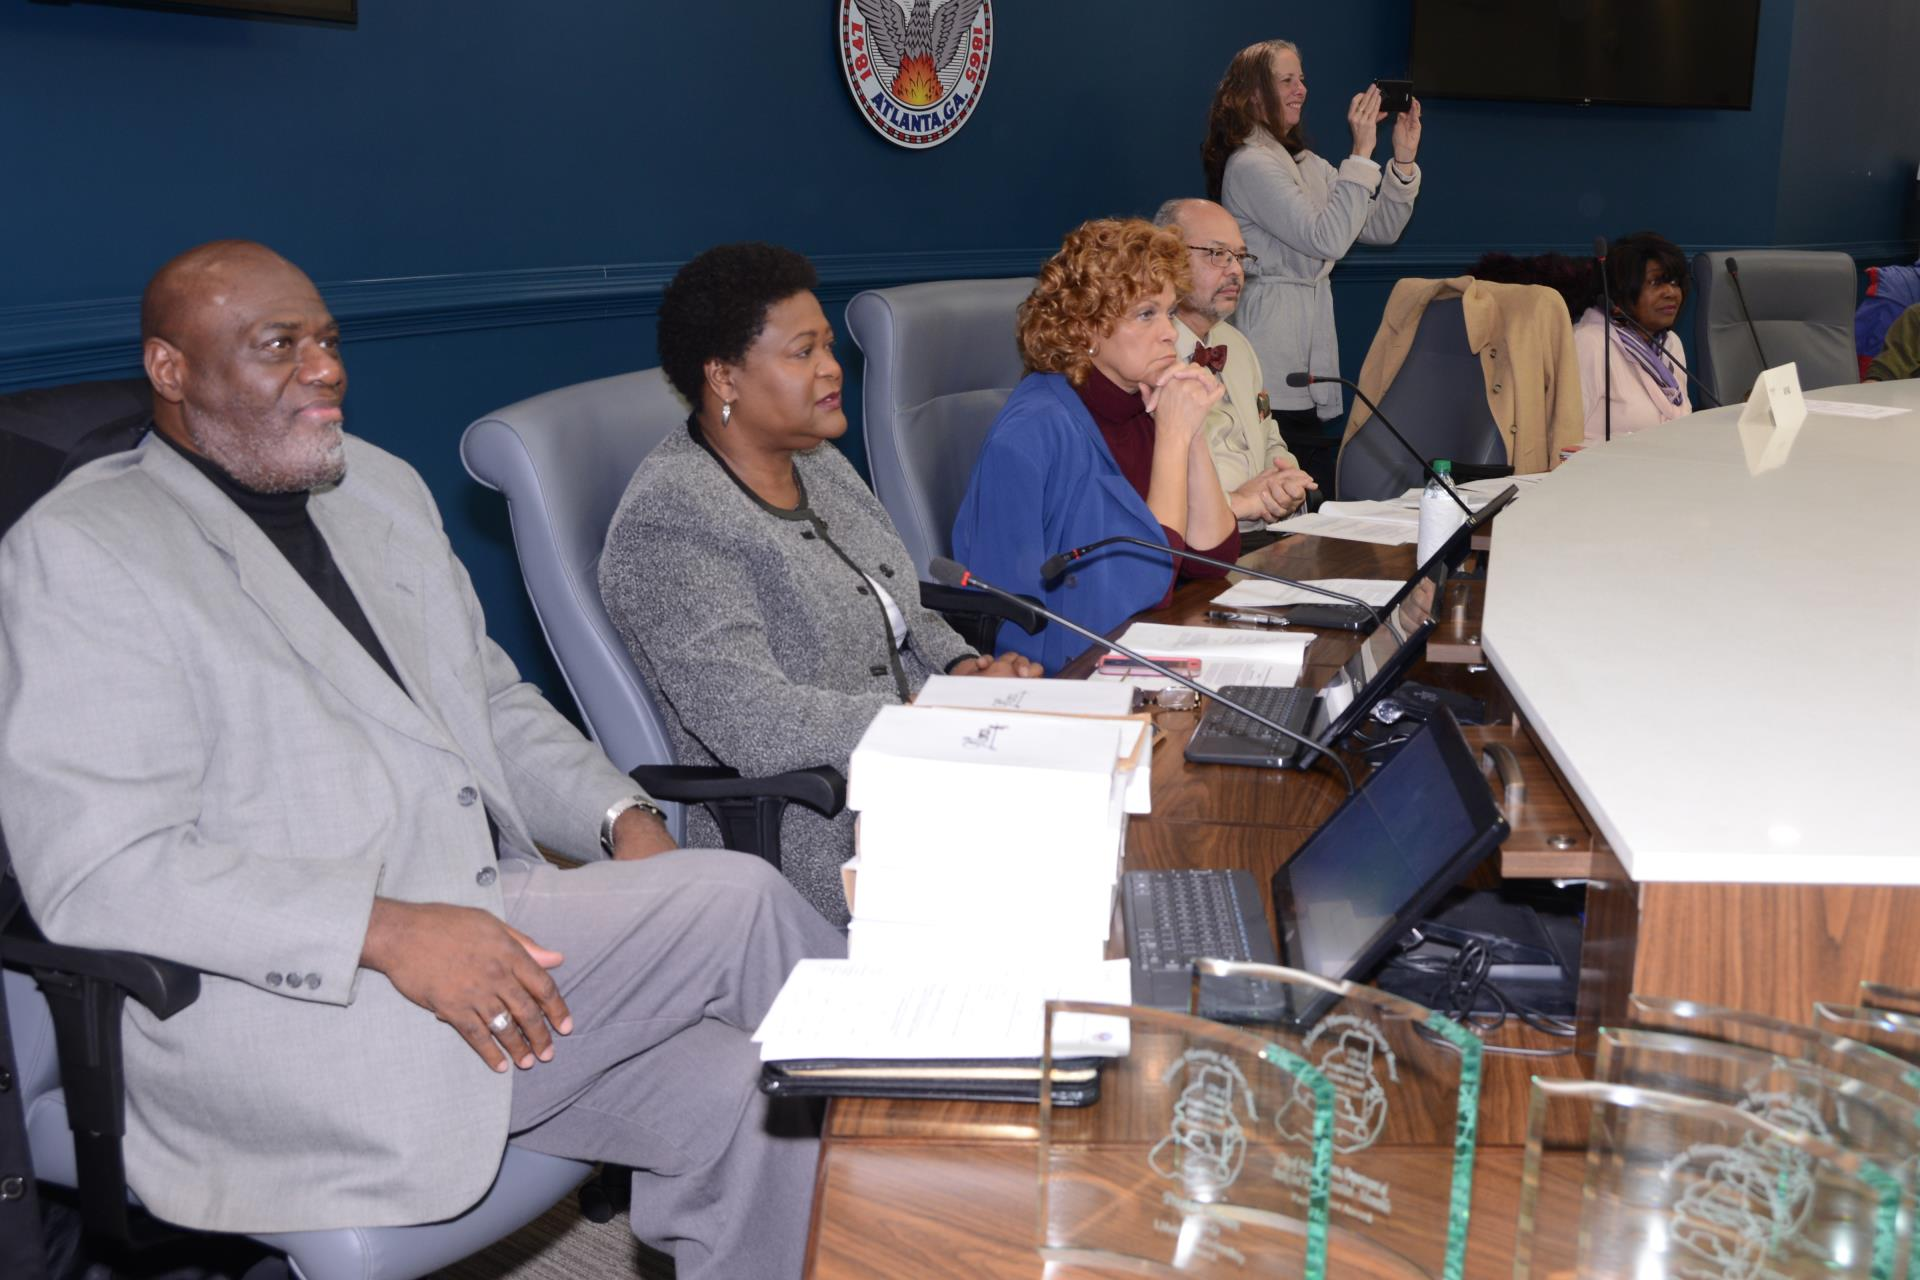 Council President Moore joins APAB officials in honoring community members